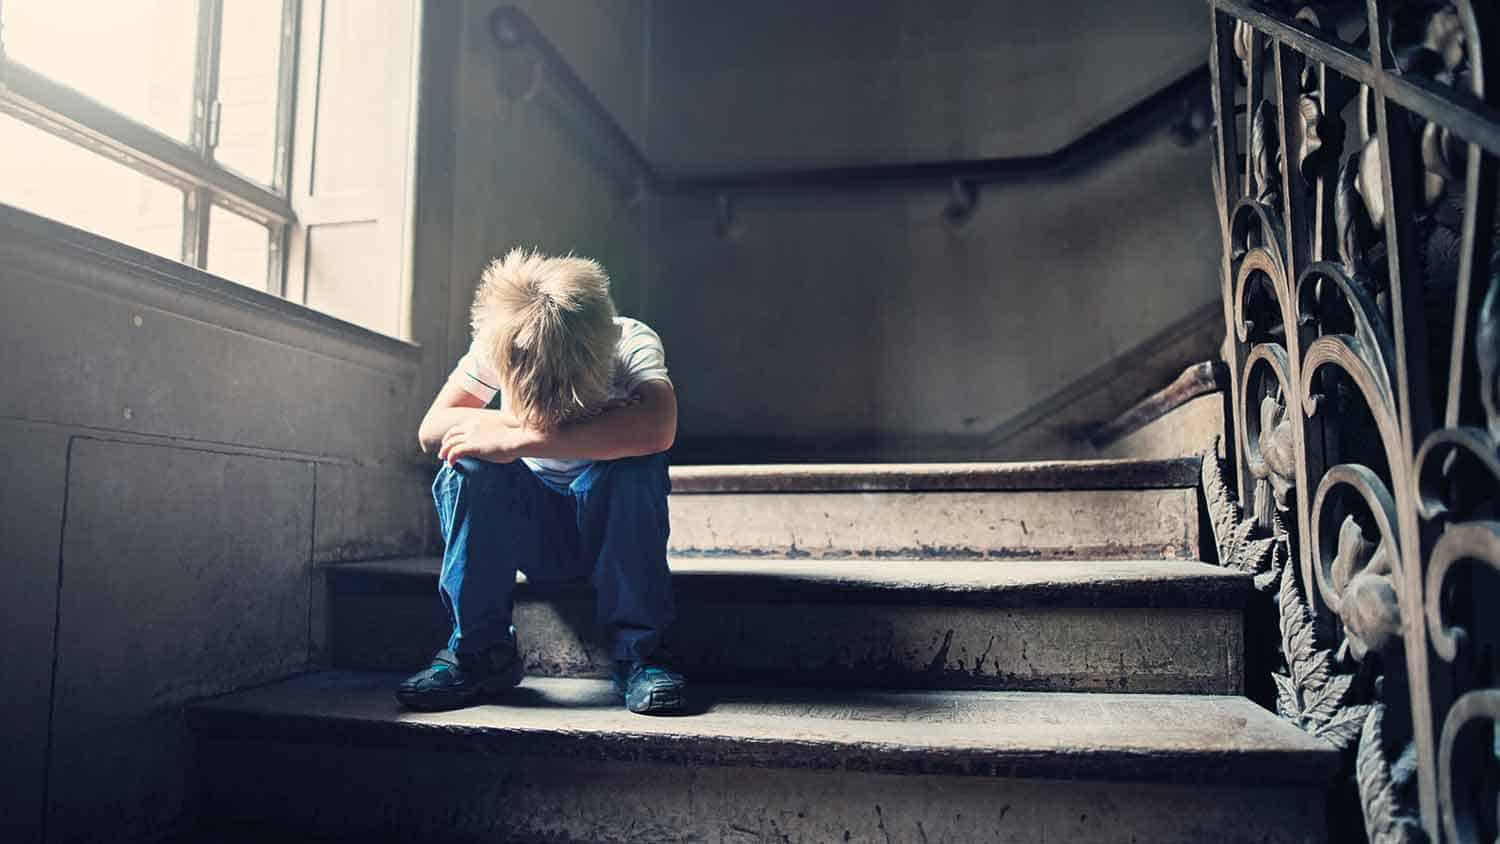 Small boy crying on the stairs, head in hands